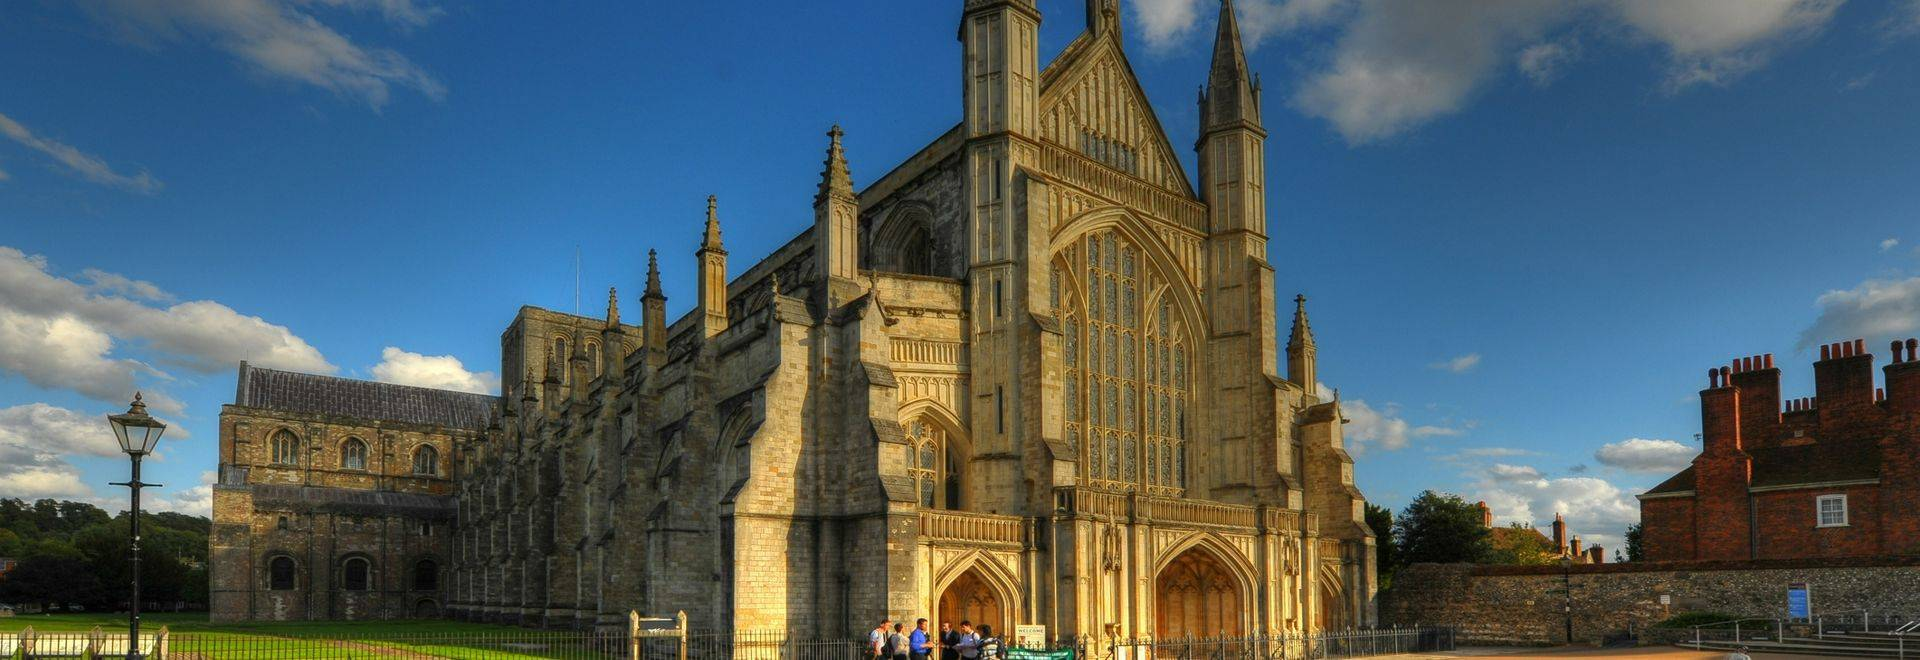 Landmark Winchester Cathedral which is main tourist attraction of this English historic city.